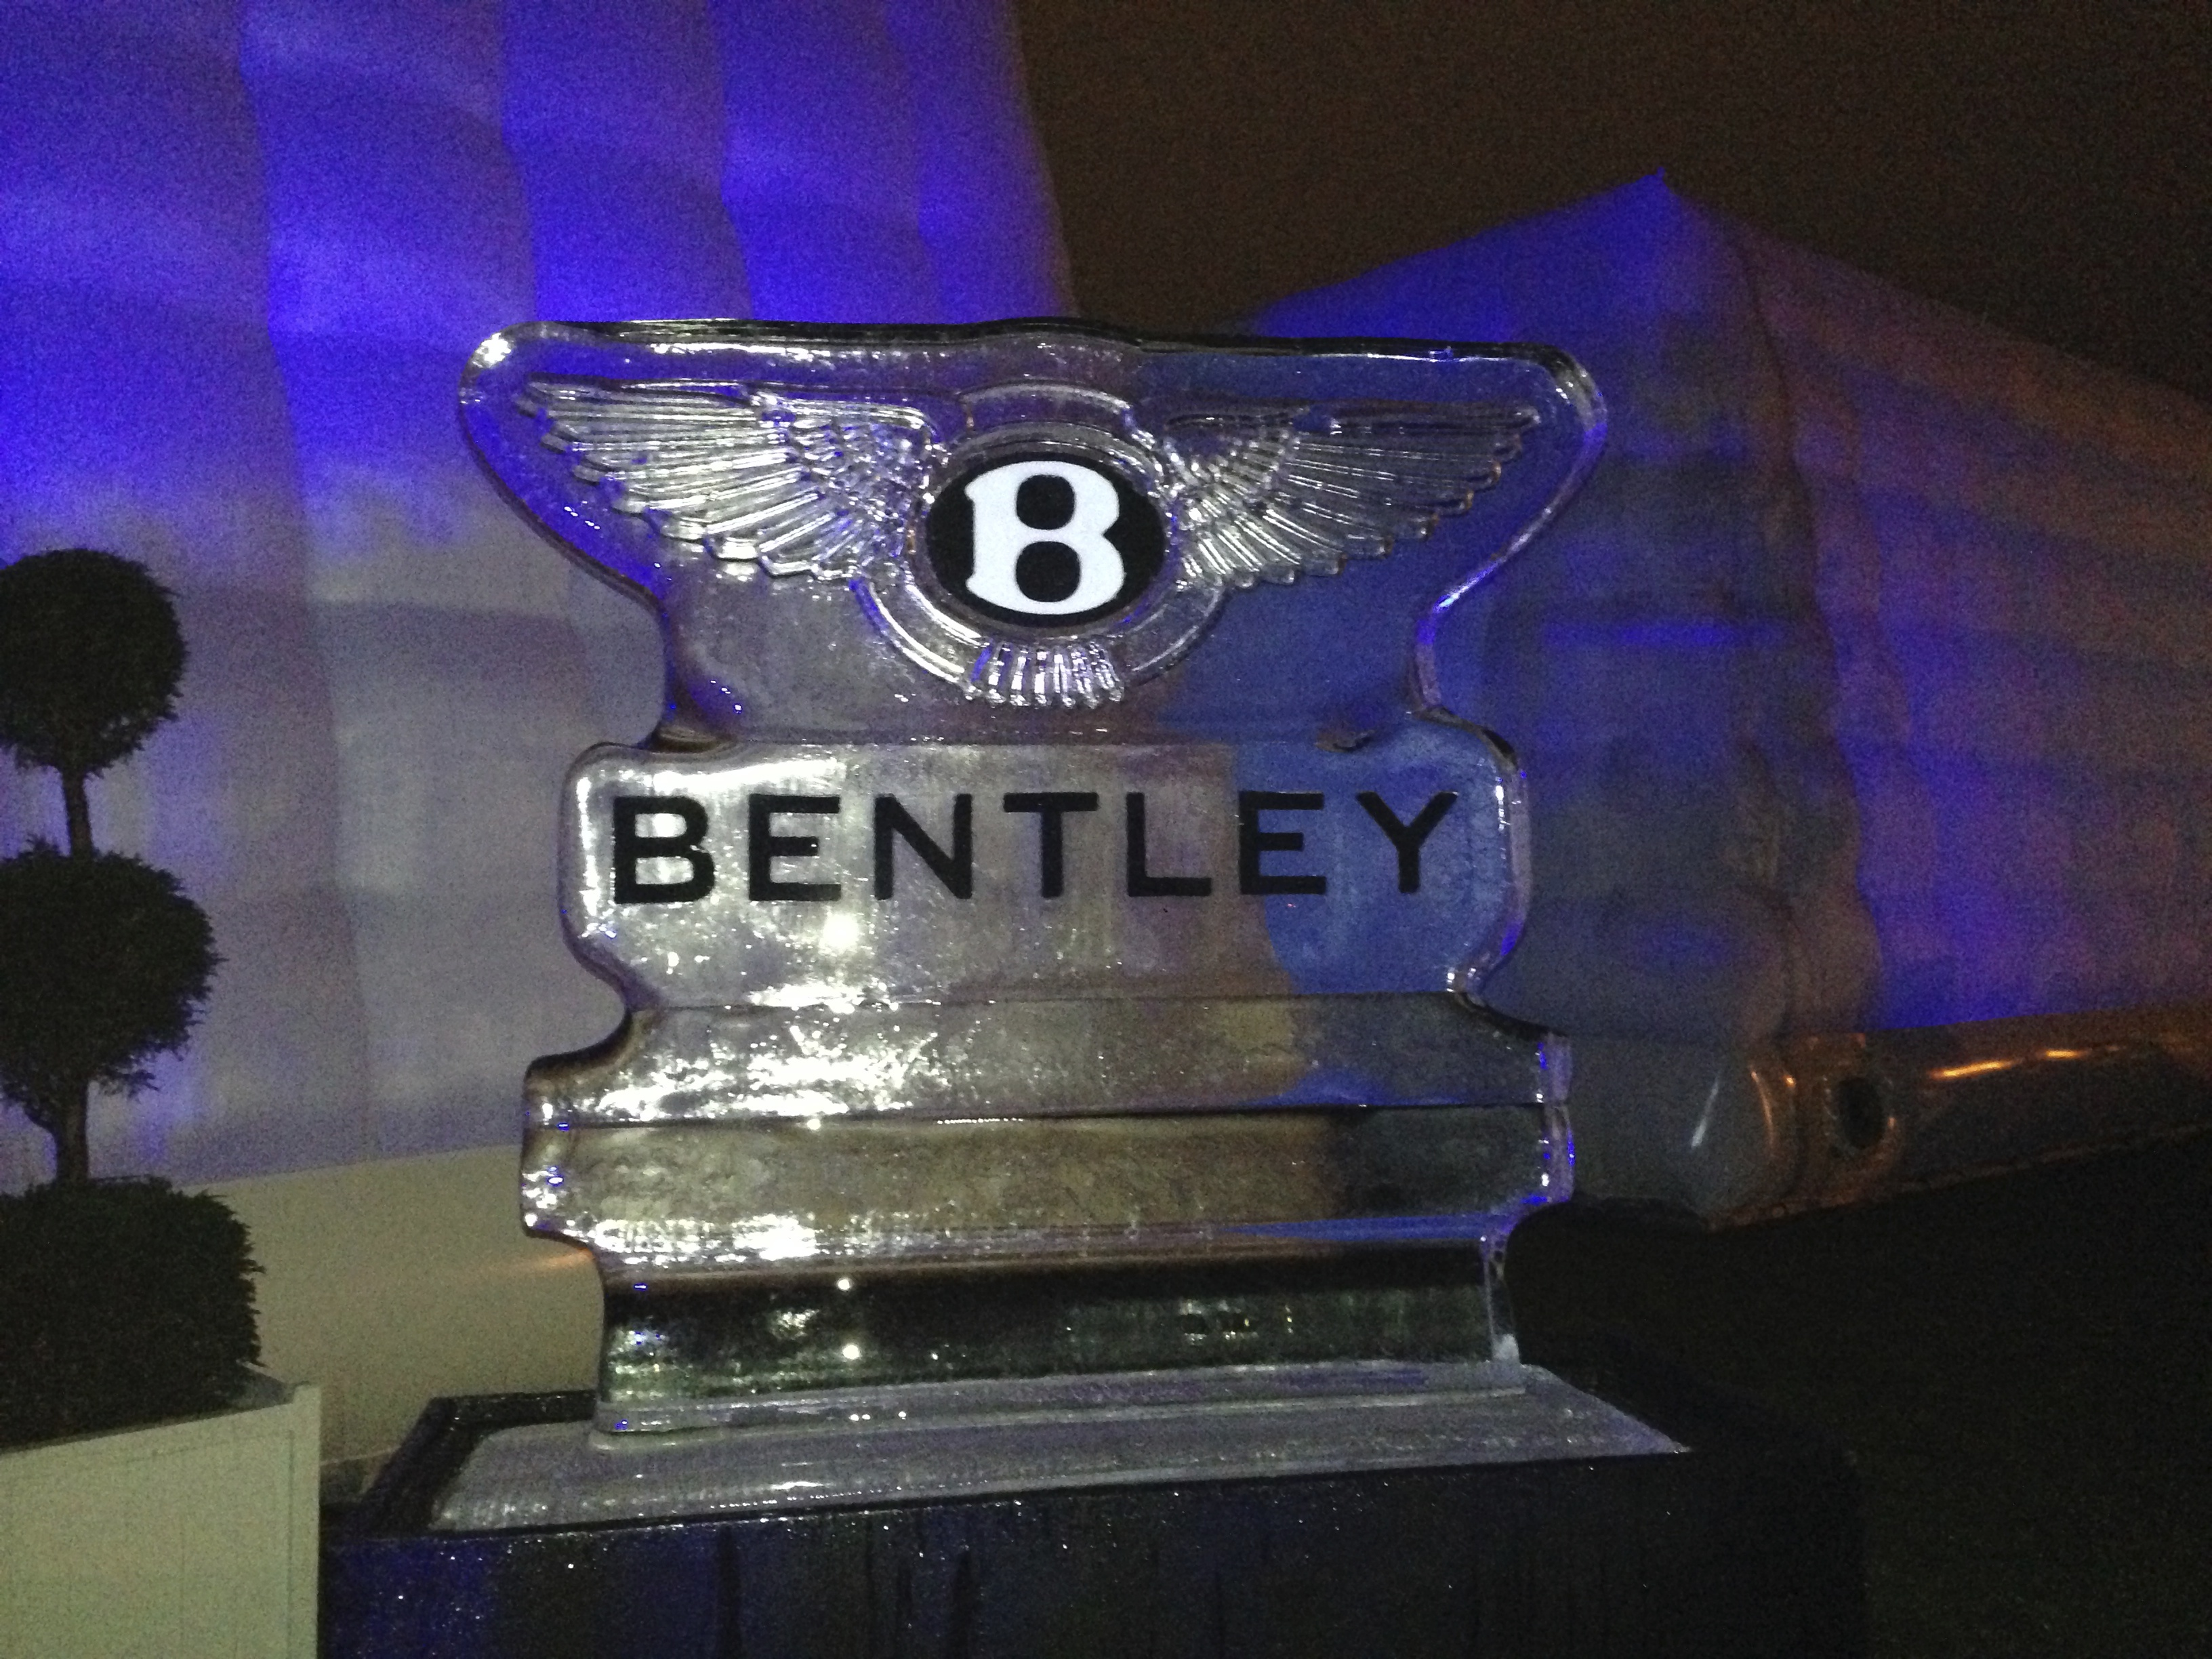 Bentley colour logo